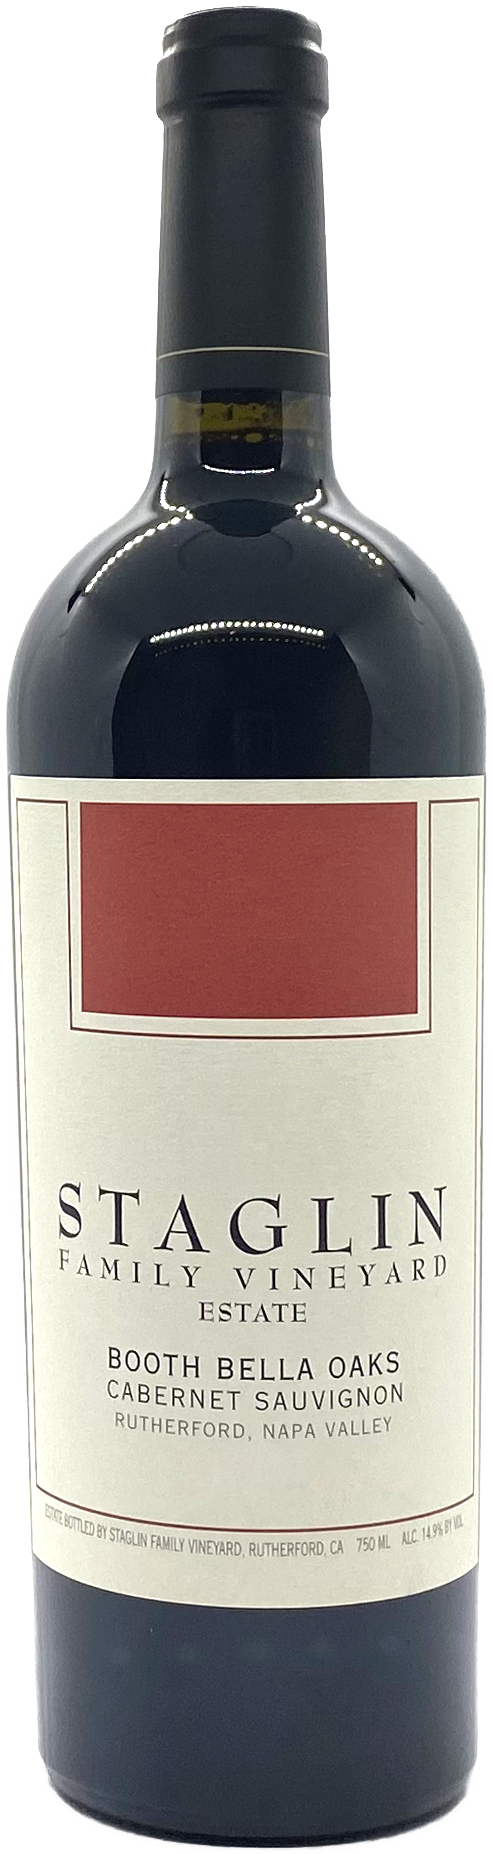 Staglin Family Vineyards Cabernet Sauvignon Booth Bella Oaks Rutherford 2014